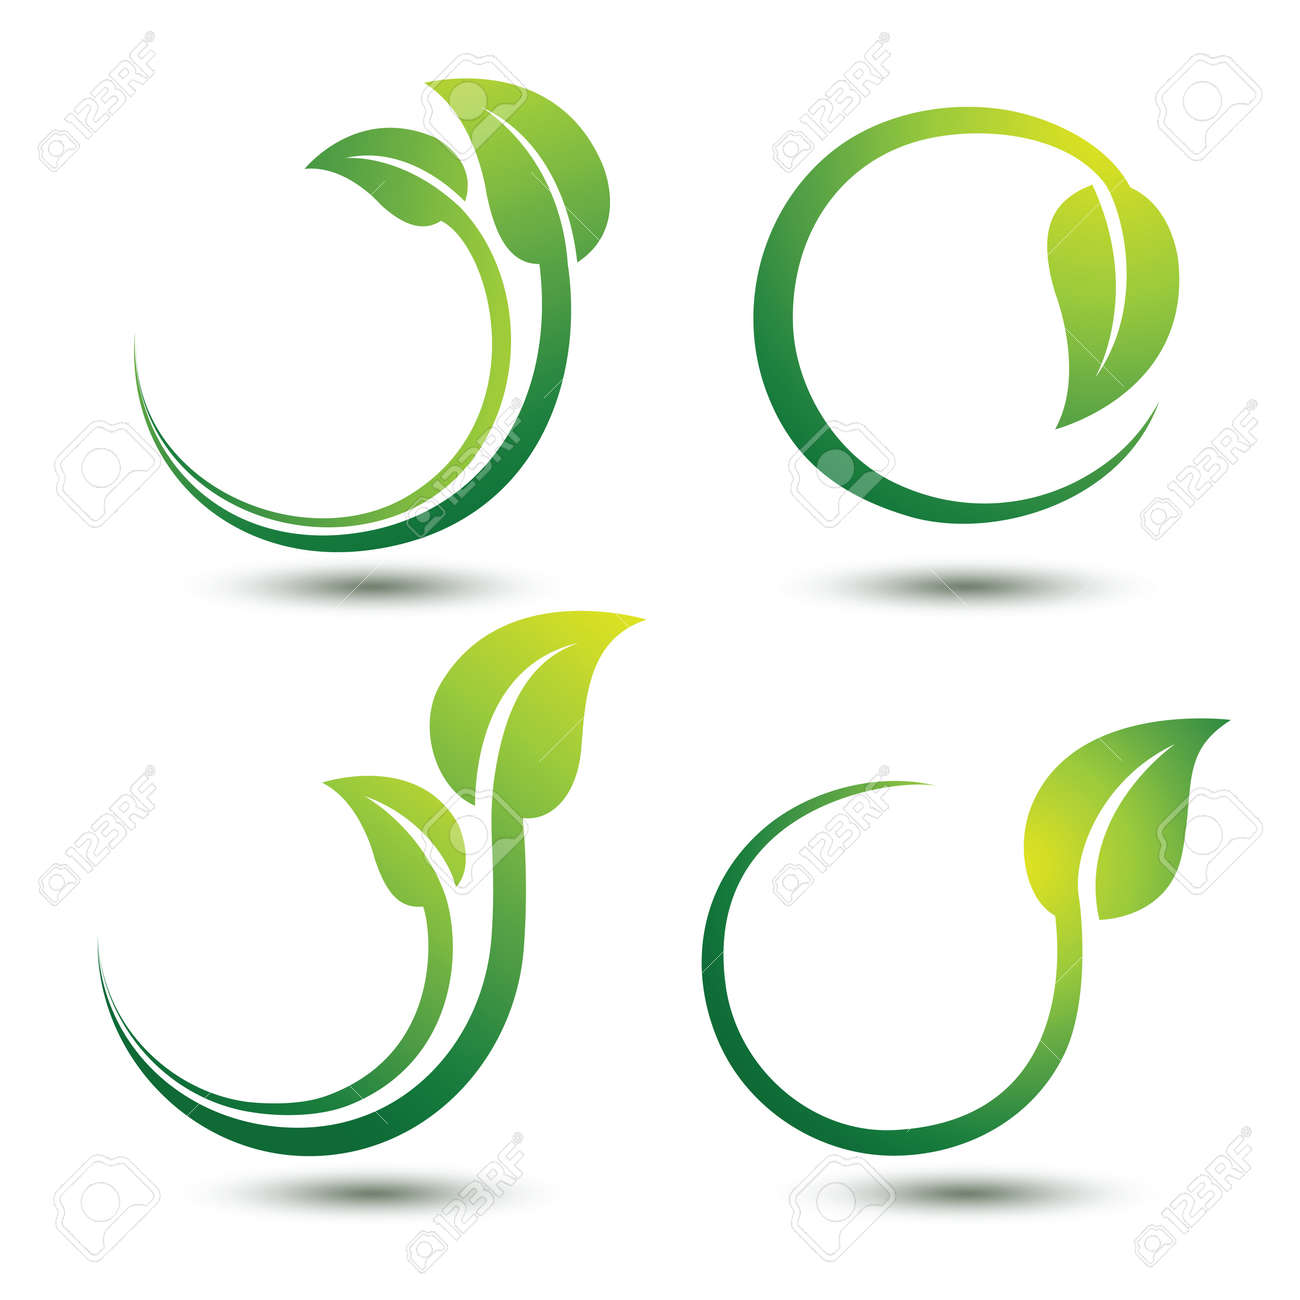 Green labels concept with leaves,vector illustration Stock Vector - 47616599